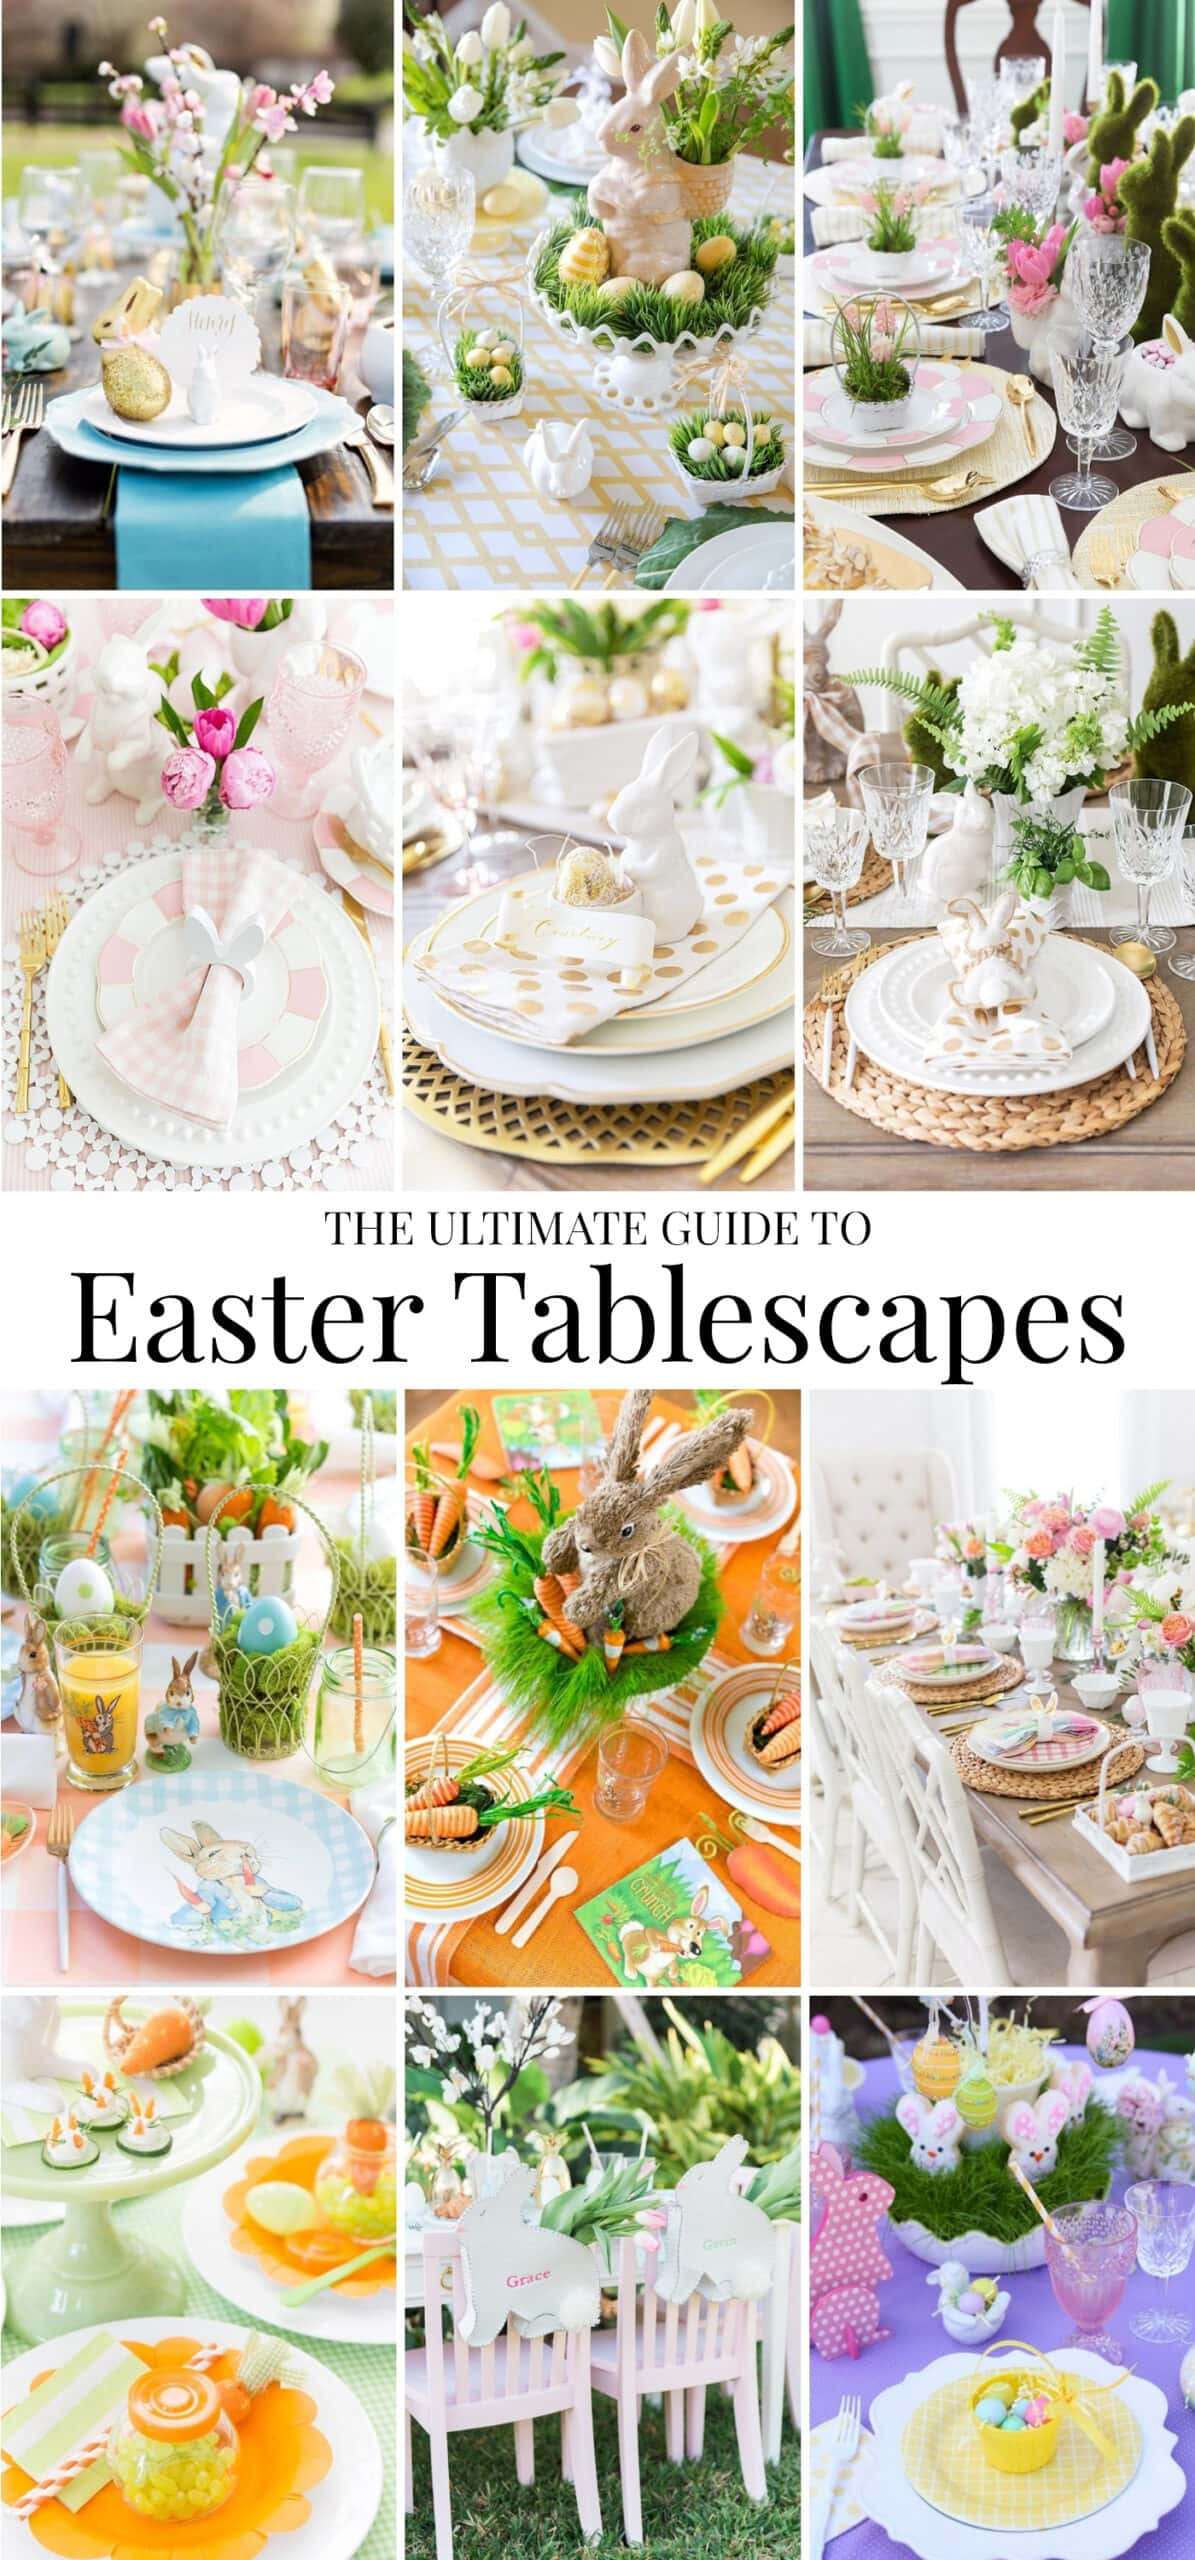 Easter Tablescapes and Table Settings.